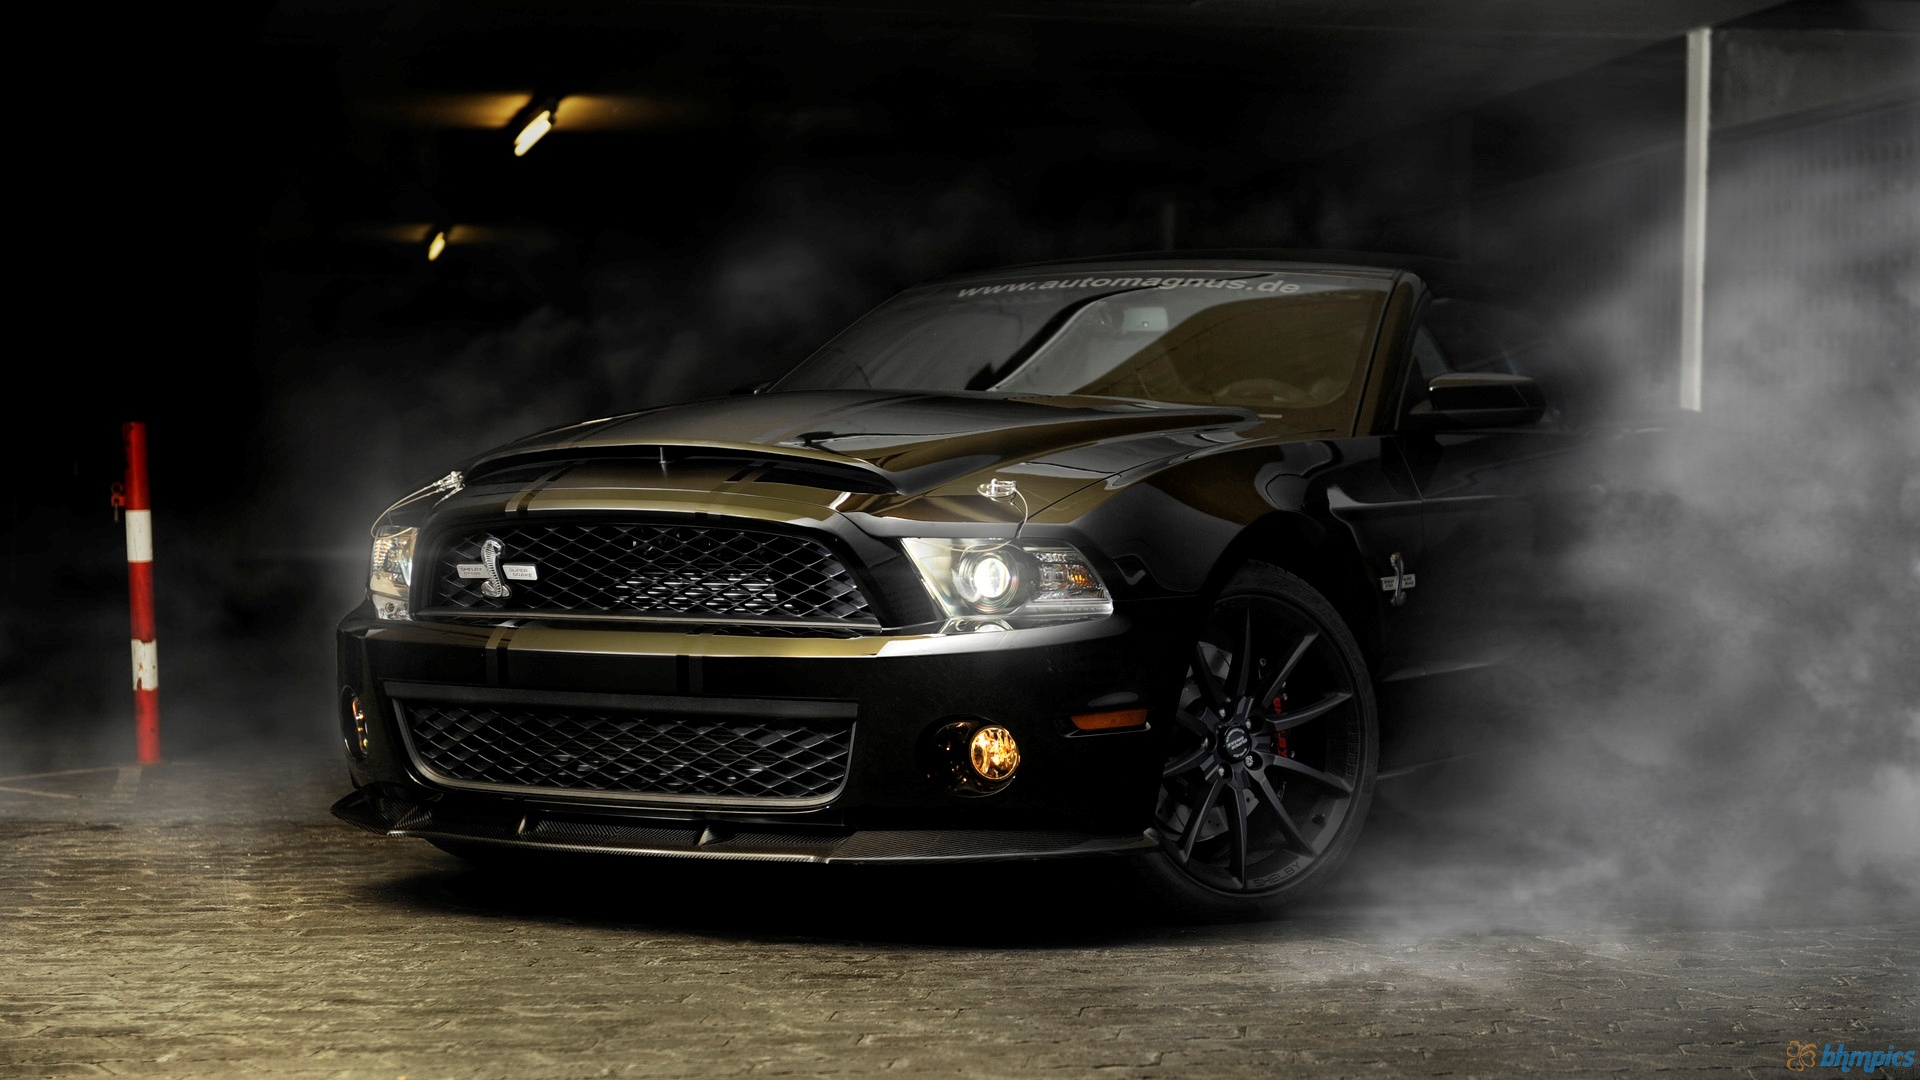 Shelby Mustang Gt500 Super Snake Wallpaper 1 1920x1080